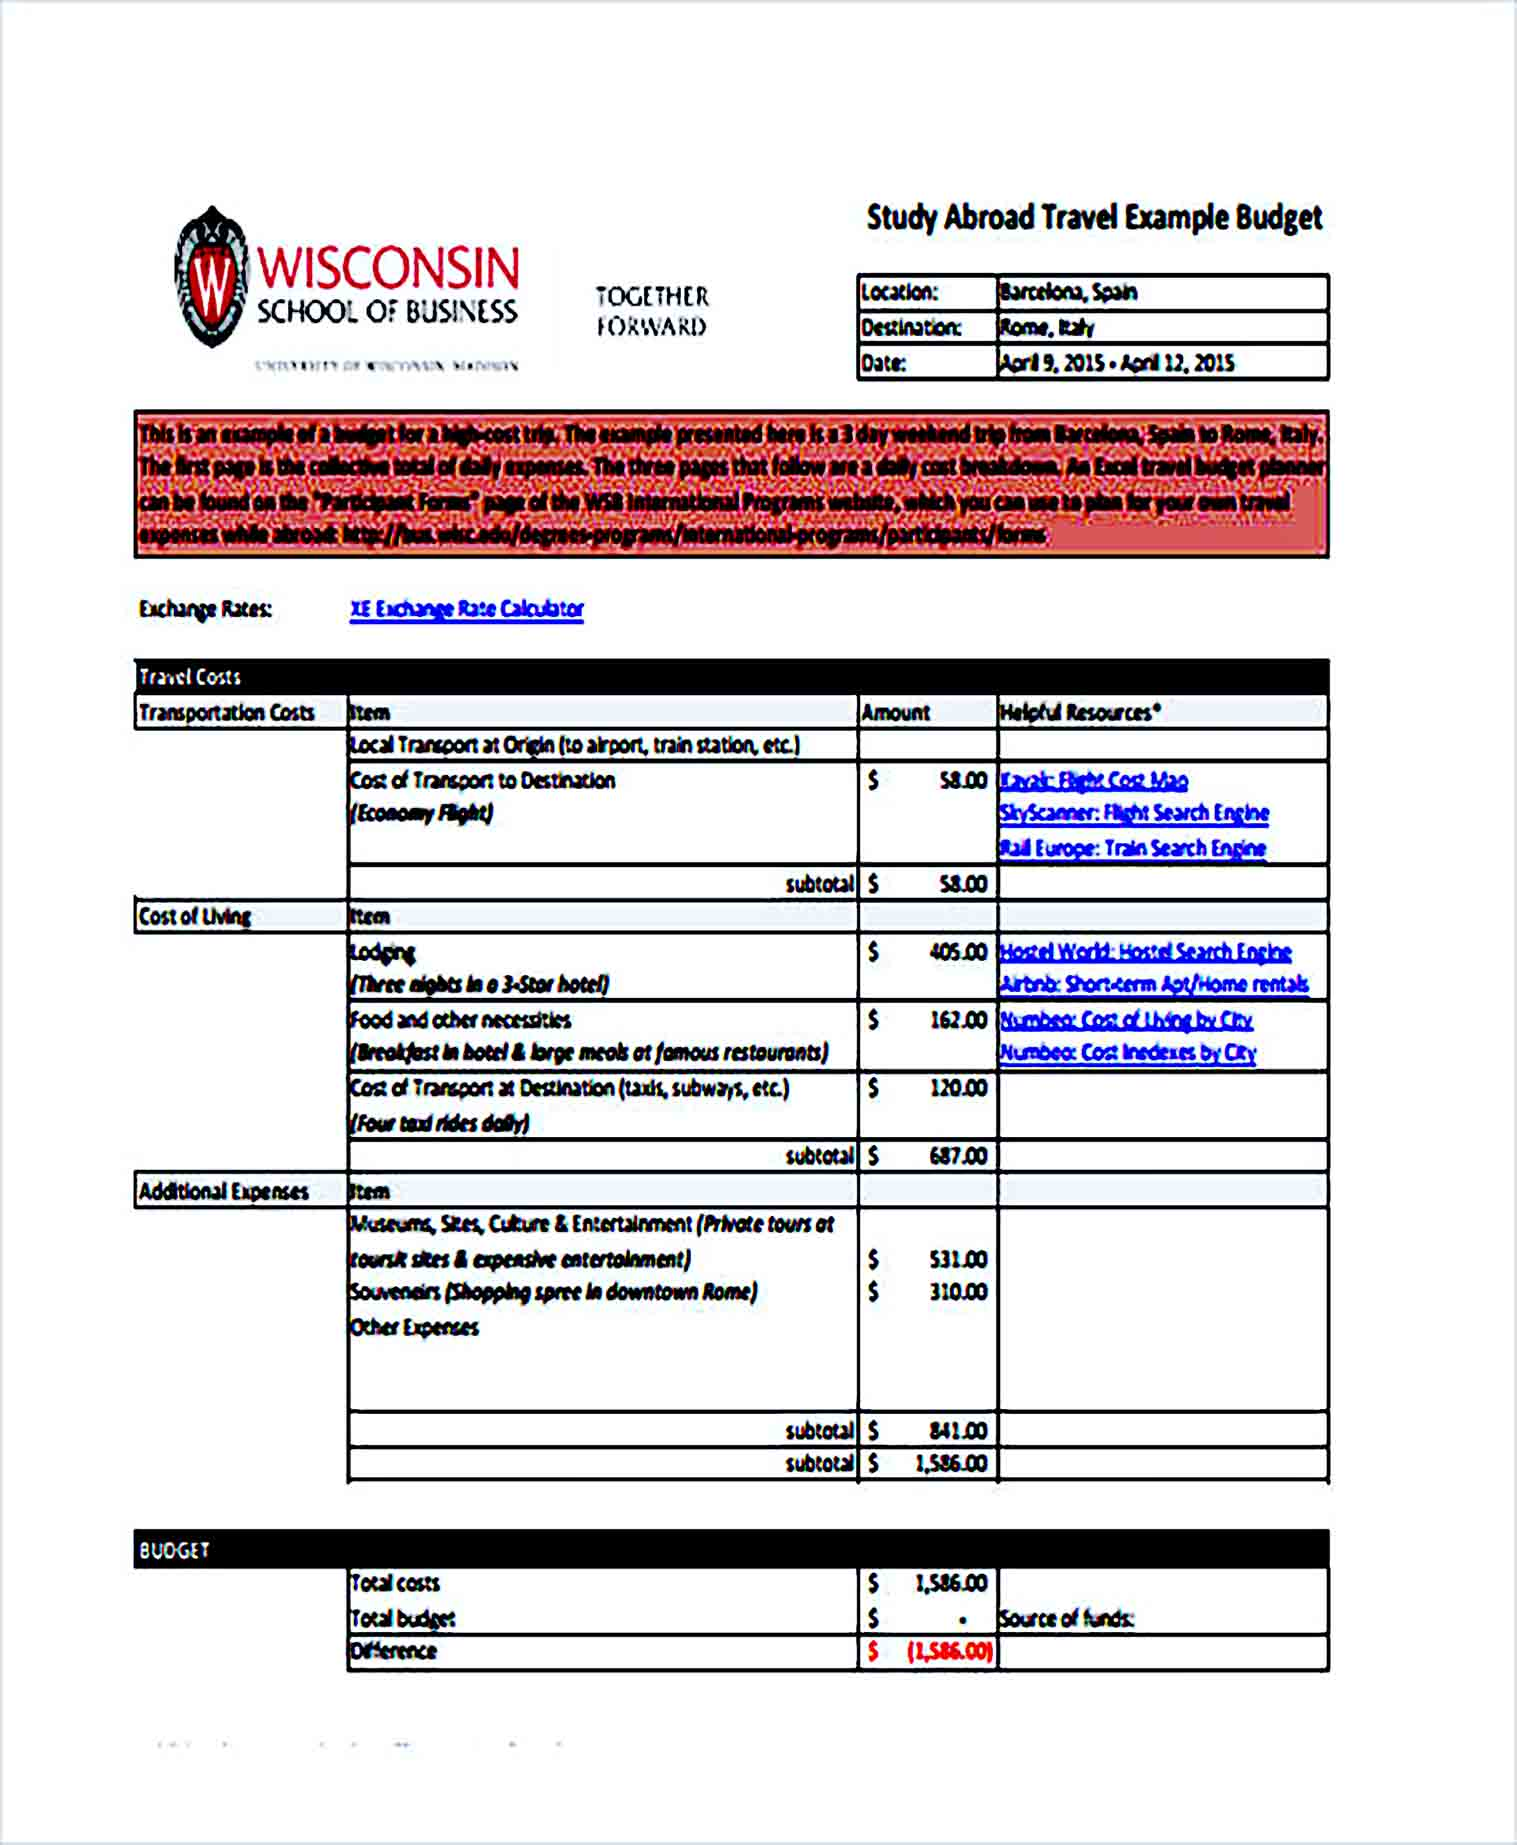 Sample Budget of Study Abroad Travel